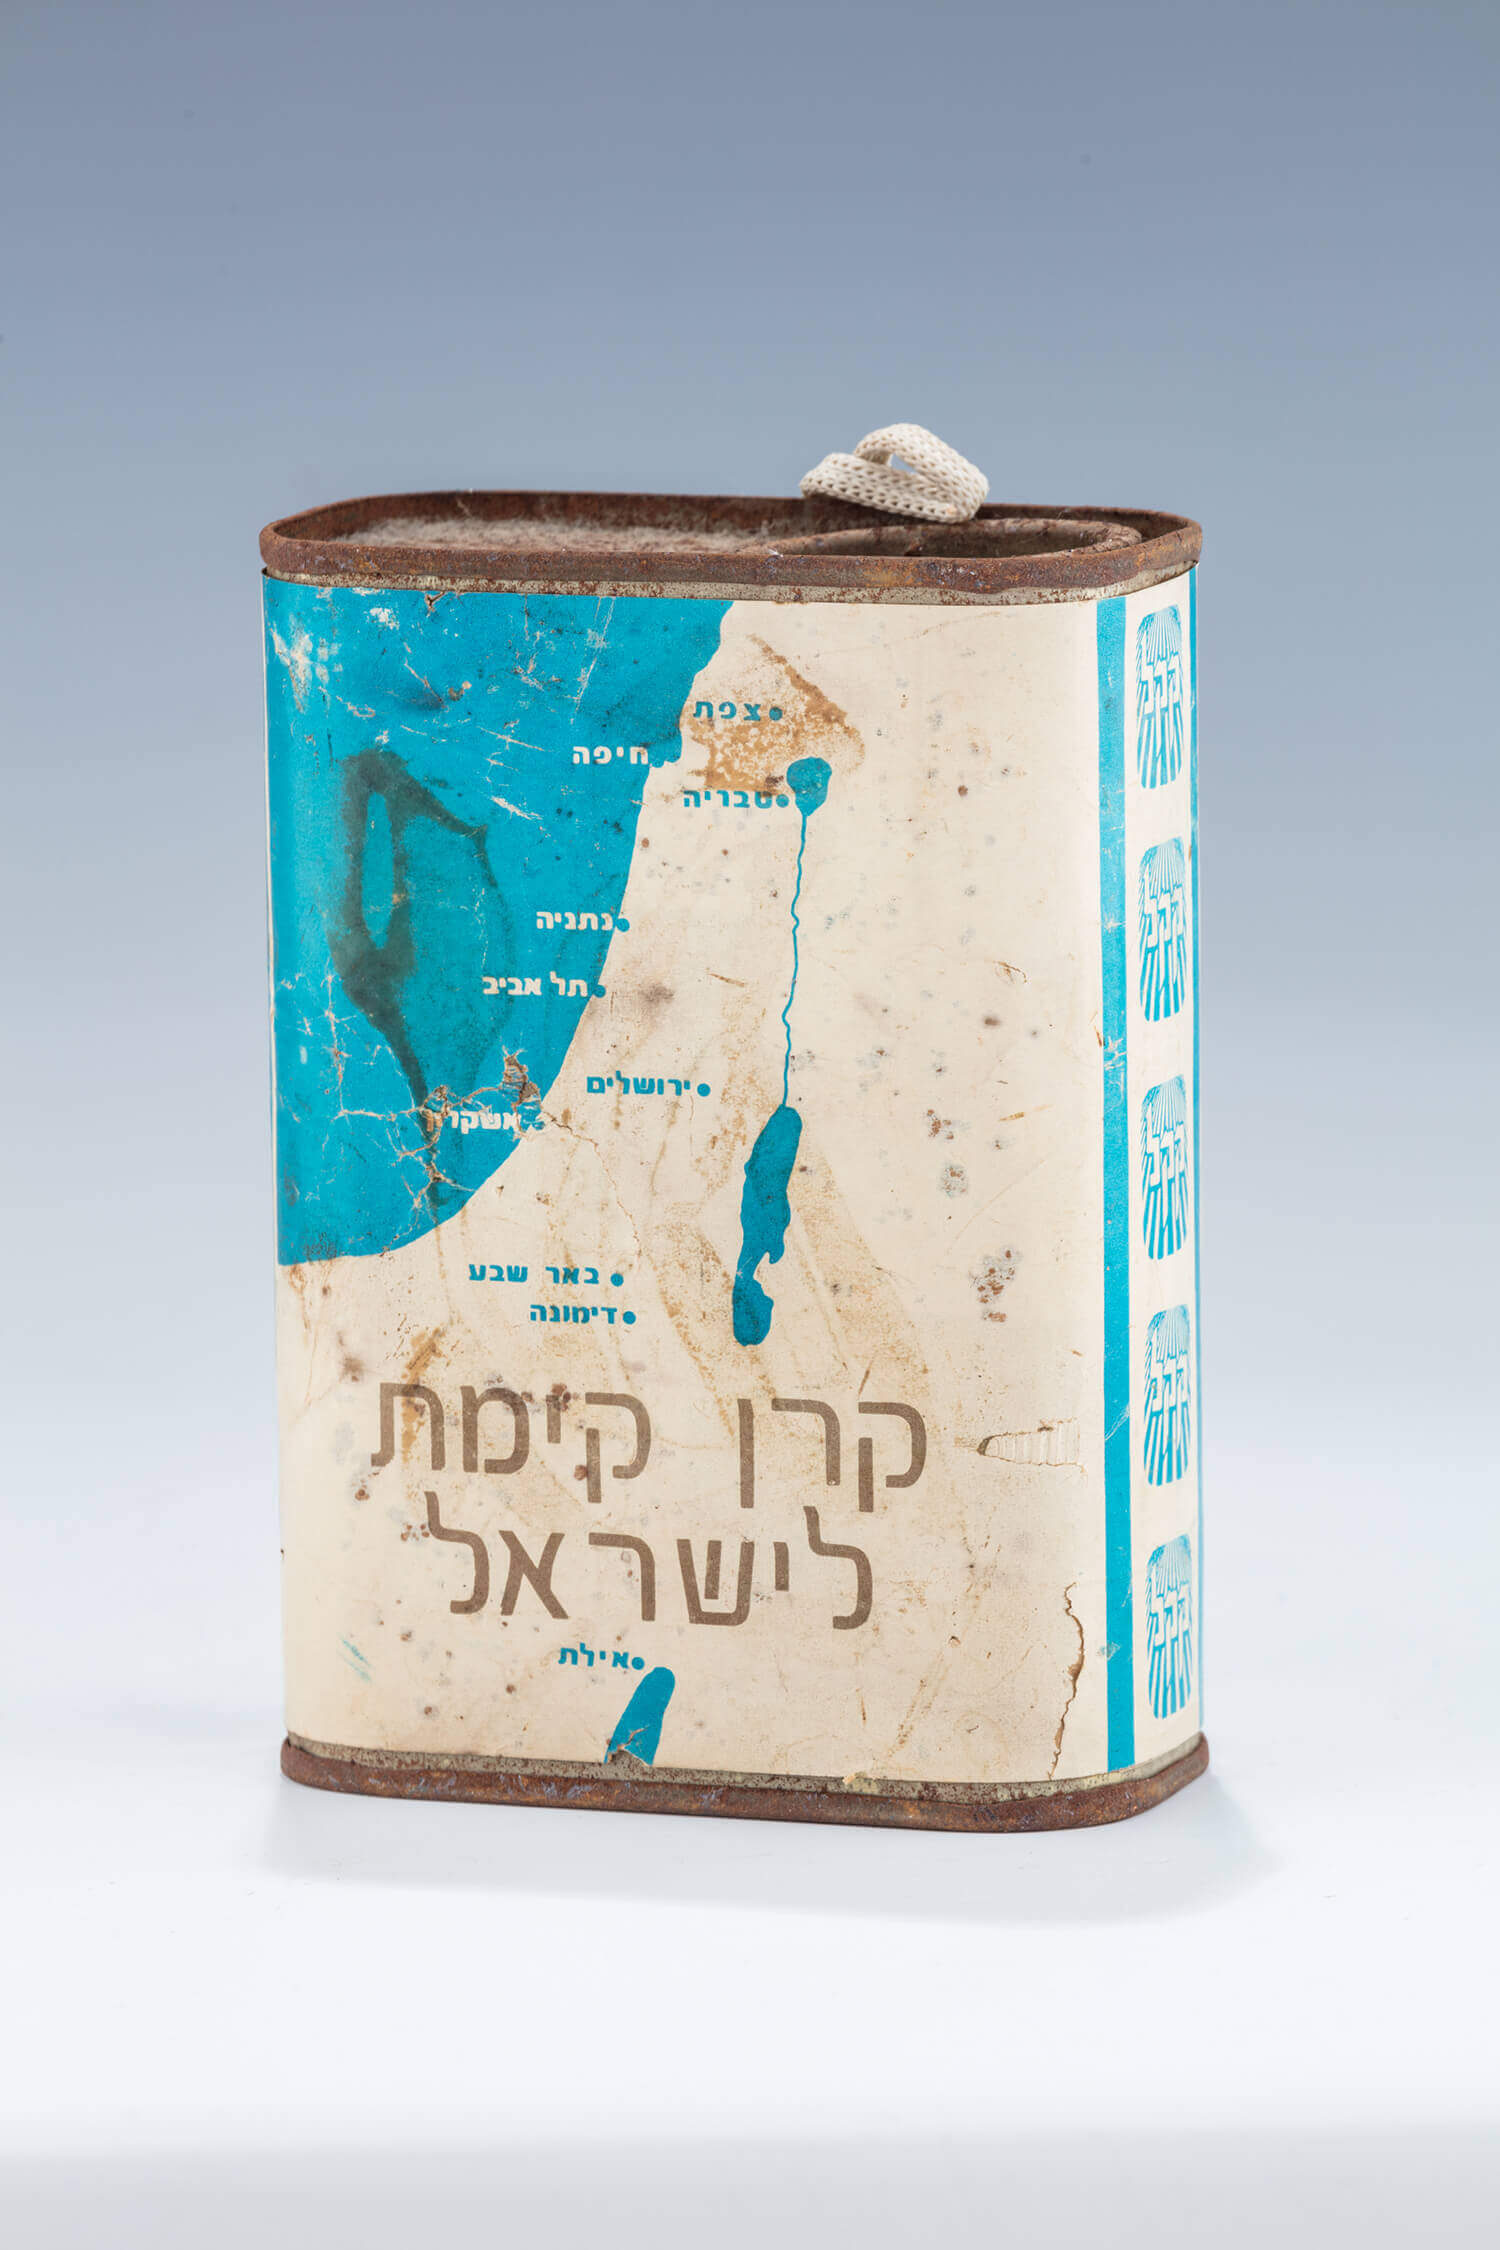 005. AN EARLY ISRAELI JNF COLLECTION BOX